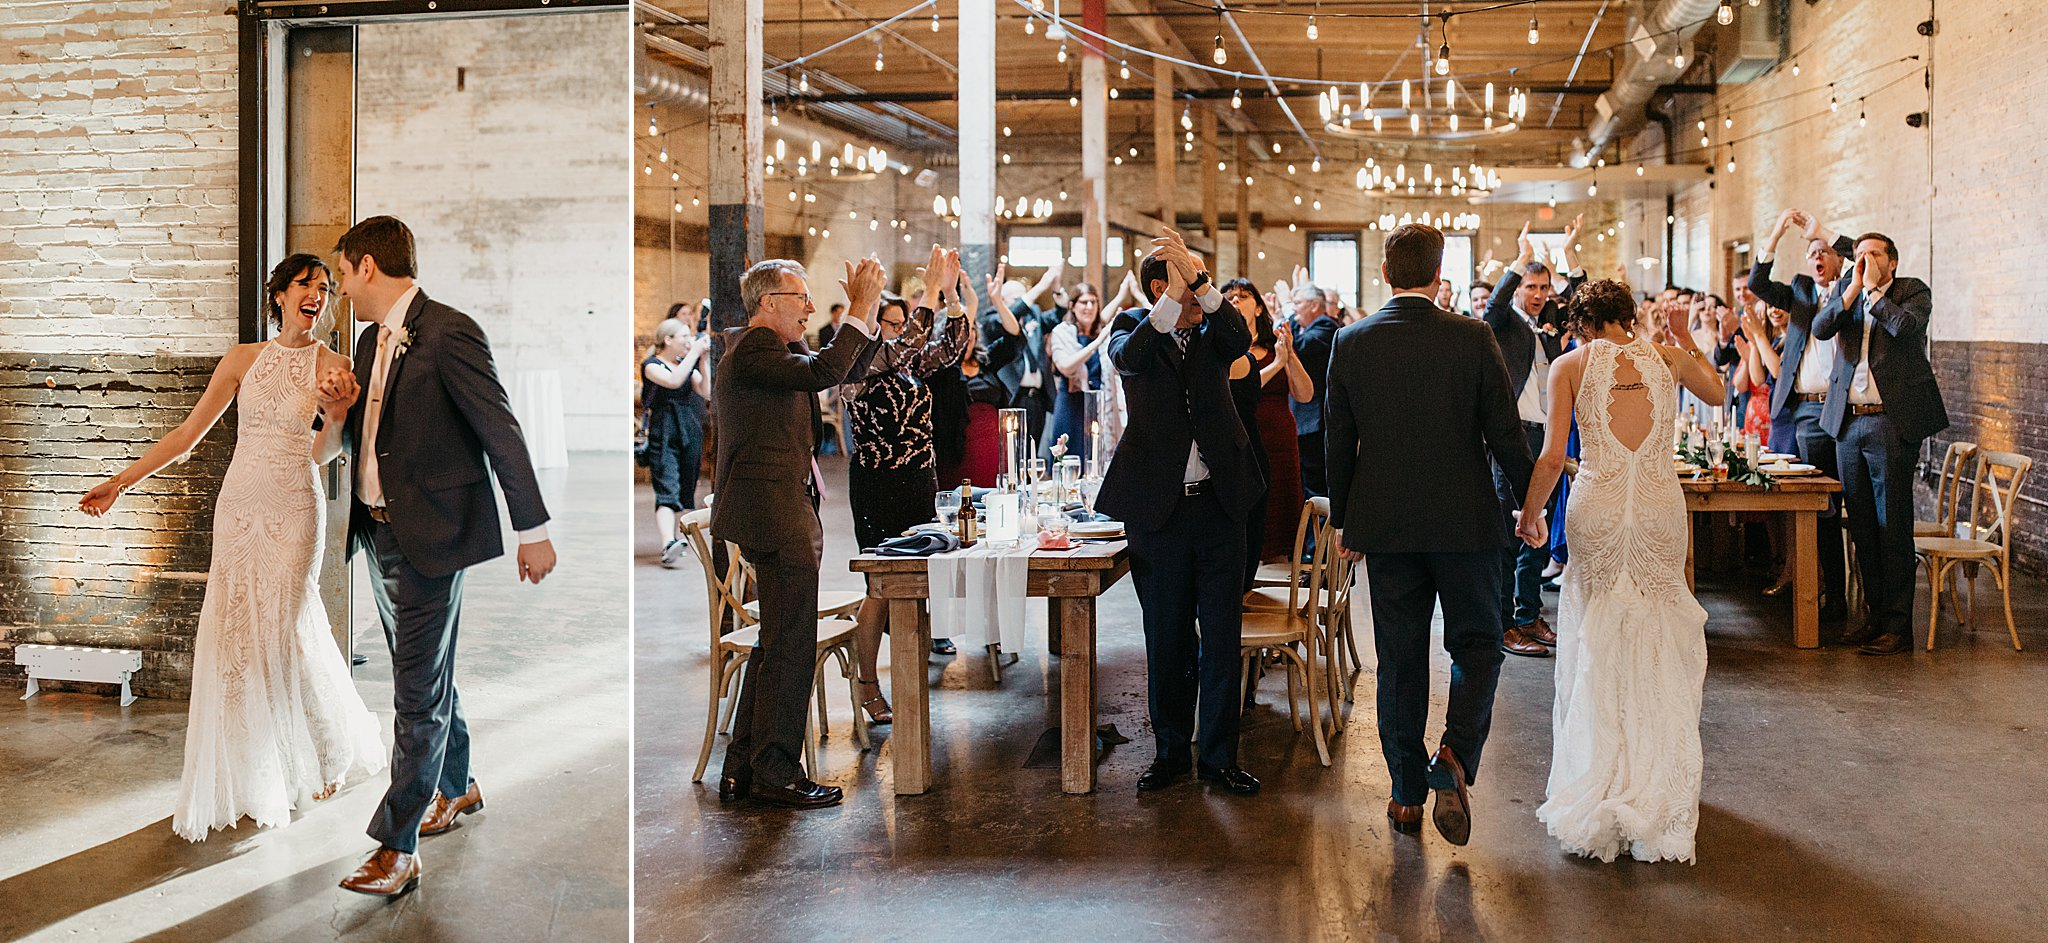 Wilderlove Co_Wedding Photographer_Industrial Wedding_Jewish Wedding_Dallas Texas Wedding_Brake & Clutch Warehouse_North Texas Photographer_0073.jpg